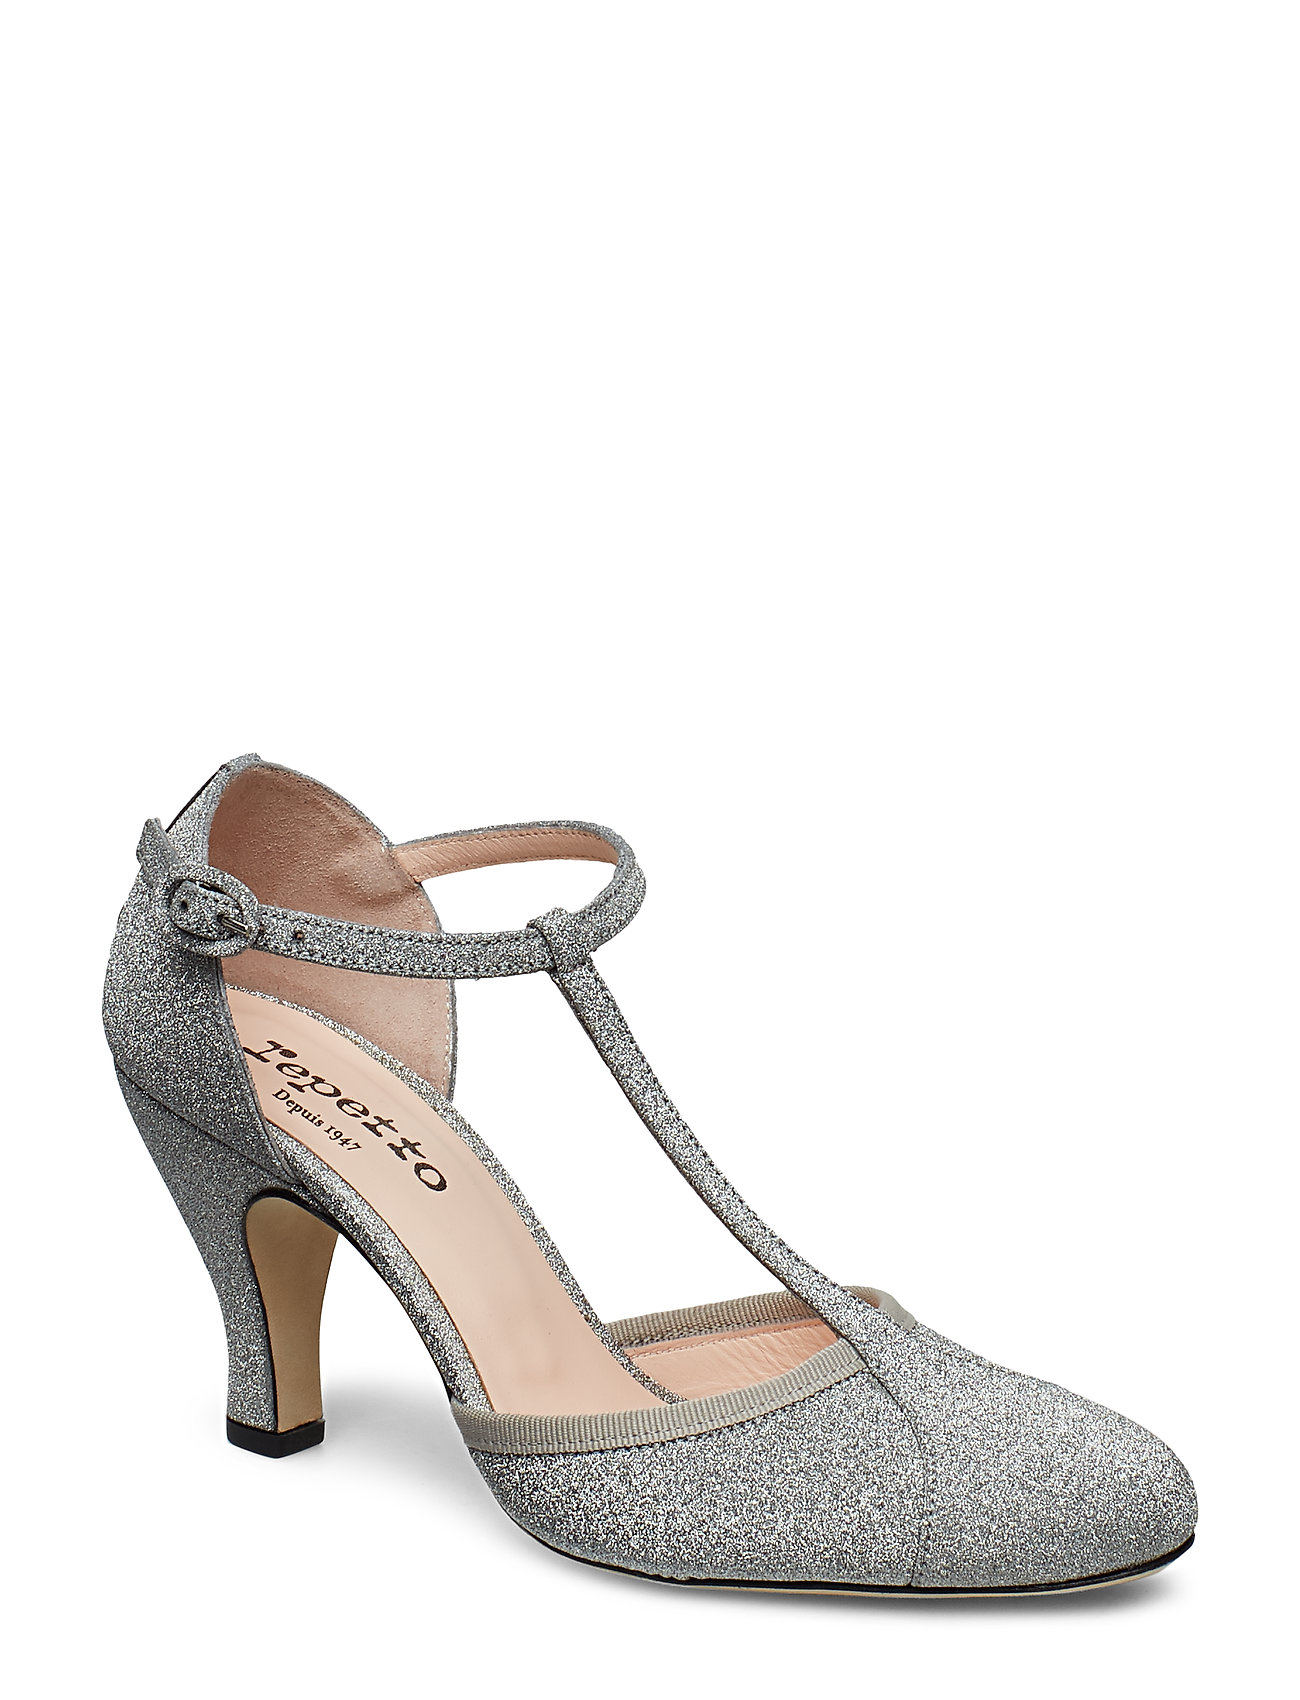 Repetto Paris BAYA 2P SAL AD - ARGENT